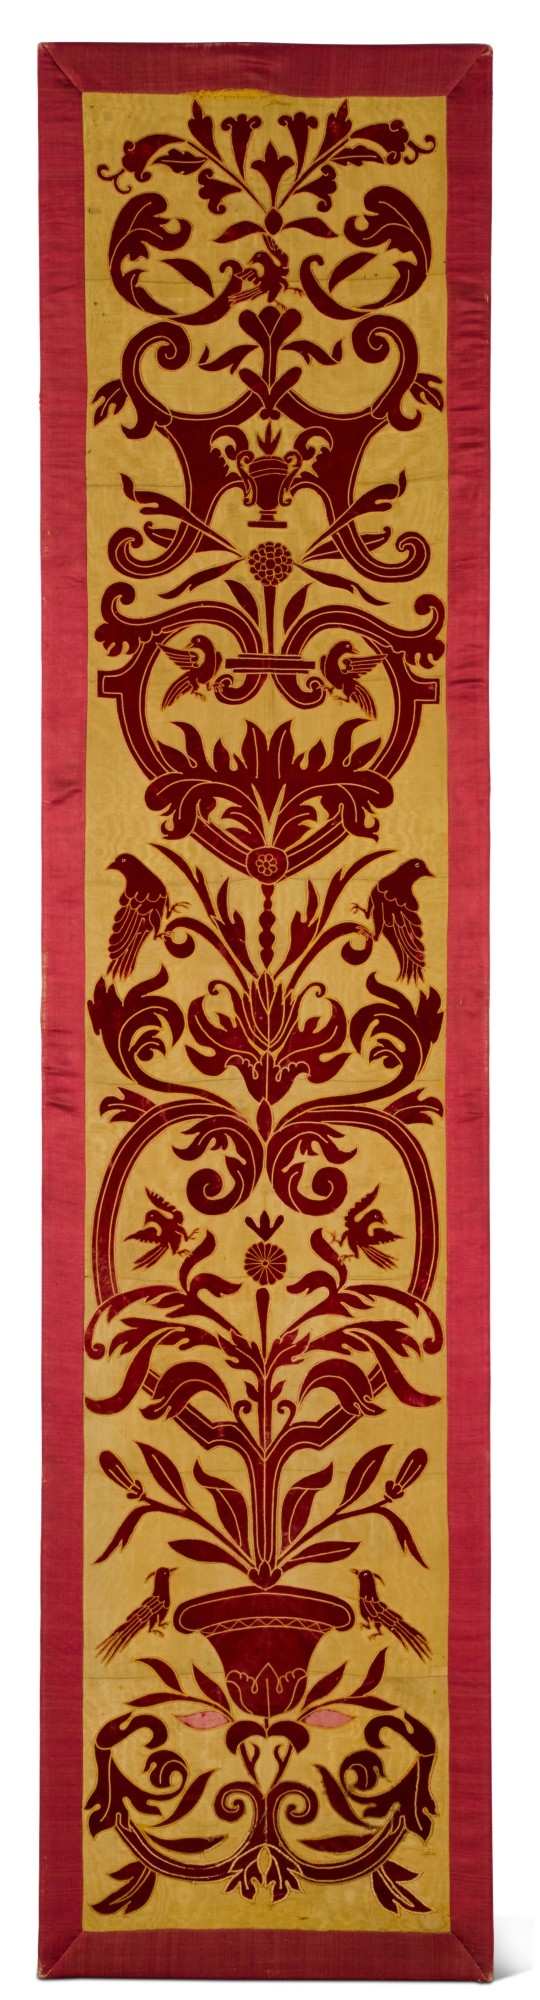 View full screen - View 1 of Lot 140. AN APPLIQUÉ PANEL OF RED VELVET ON A YELLOW SILK GROUND, ITALIAN OR SPANISH, IN 16TH CENTURY STYLE, CIRCA 1860.